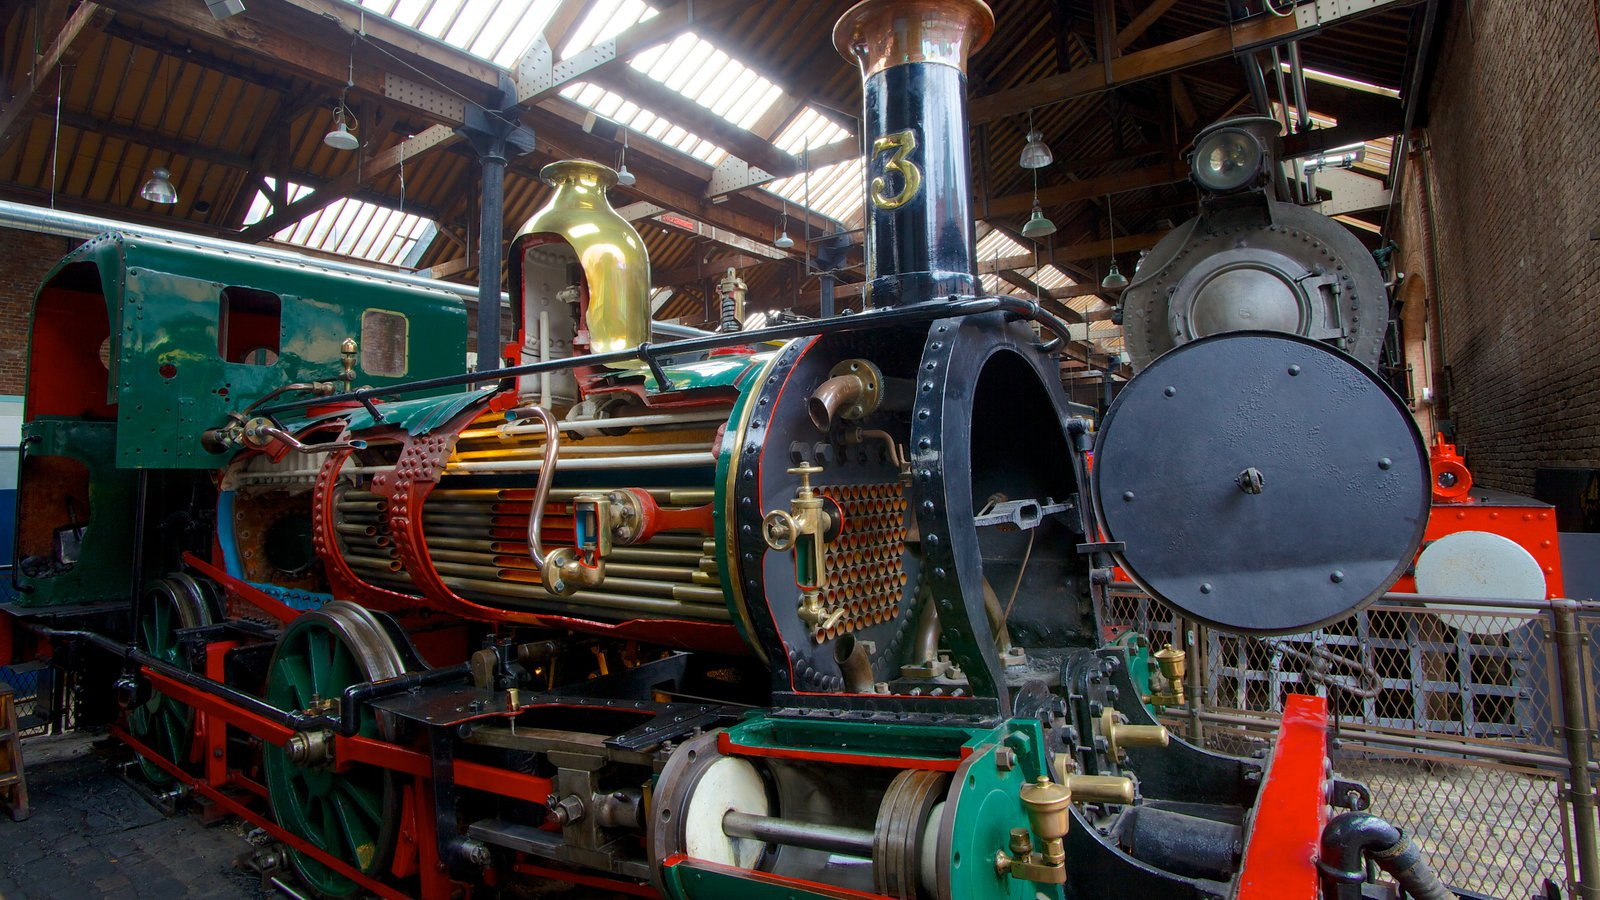 Museum of Science and Industry featuring railway items and interior views